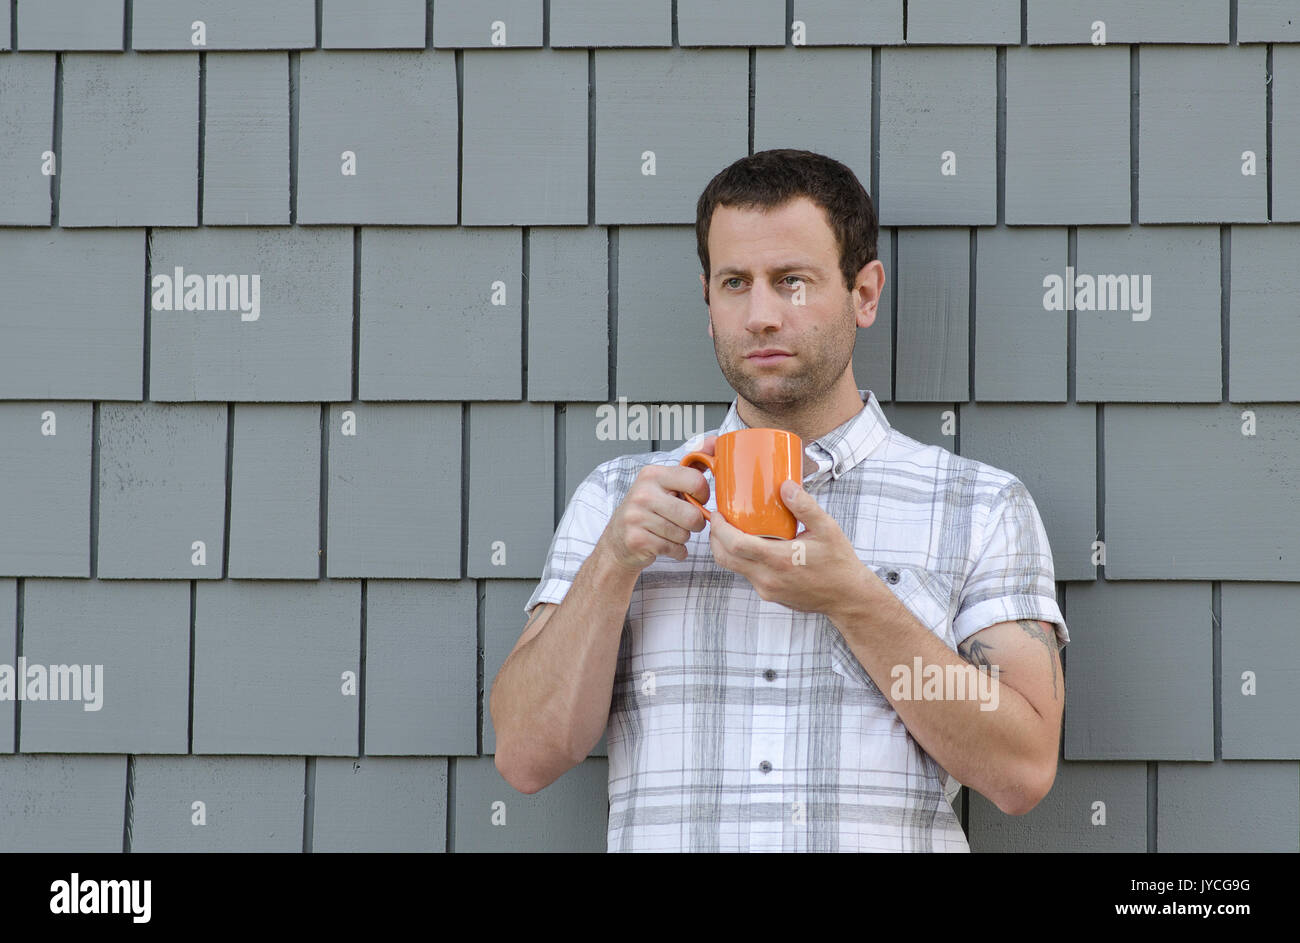 Man holding an orange coffee cup with two hands with a gray background. - Stock Image